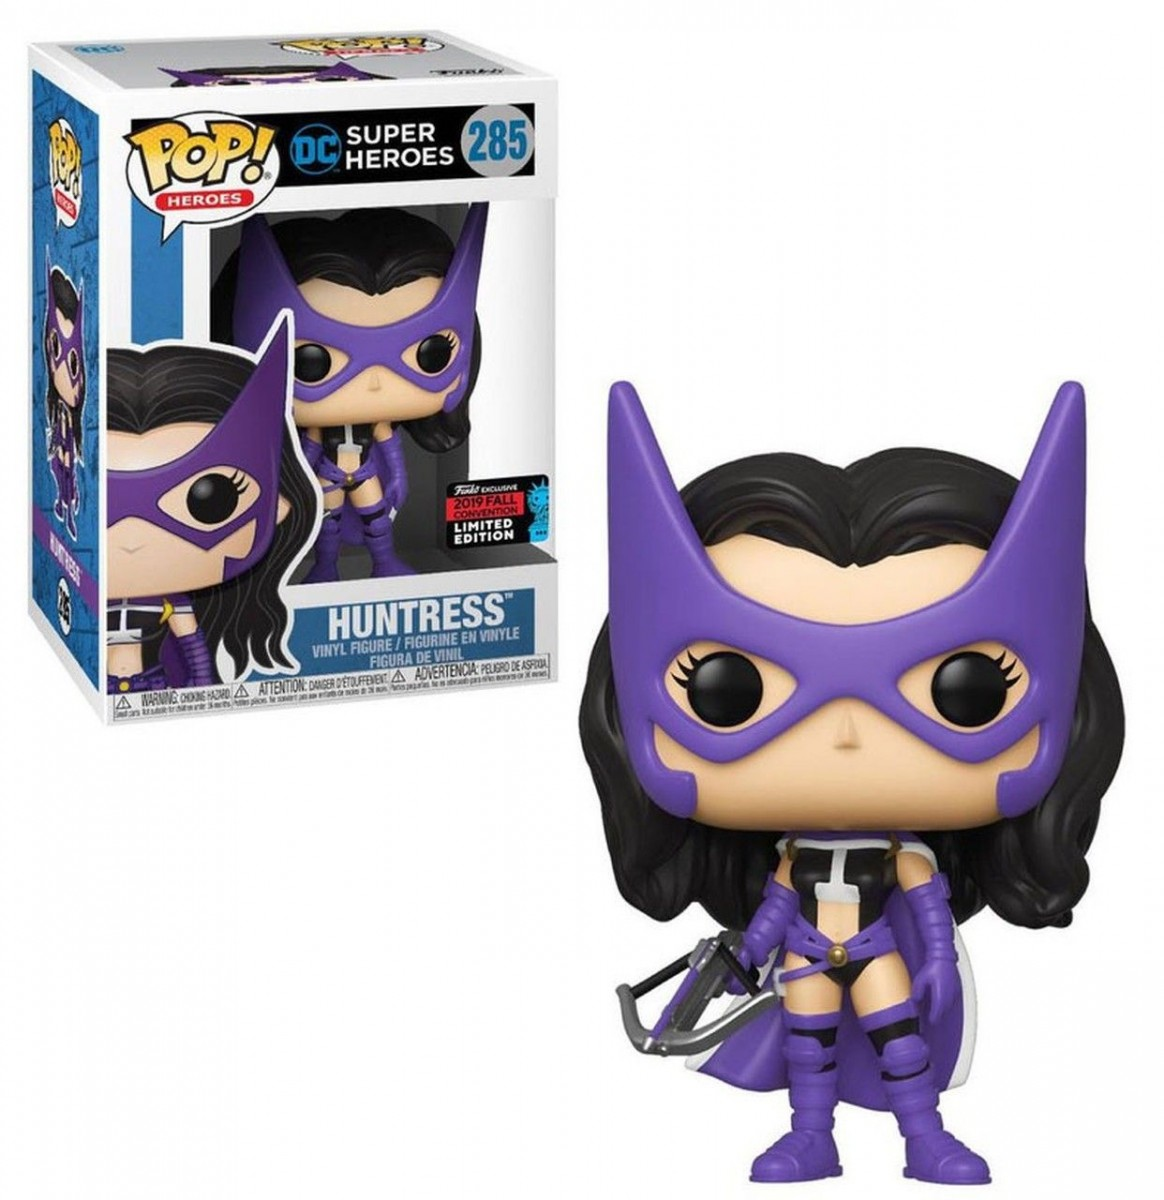 Фигурка Funko POP! Vinyl: Охотница (Huntress (NYCC 2019 Limited Edition Exclusive)) ДиСи (DC) (43377) 9,5 см